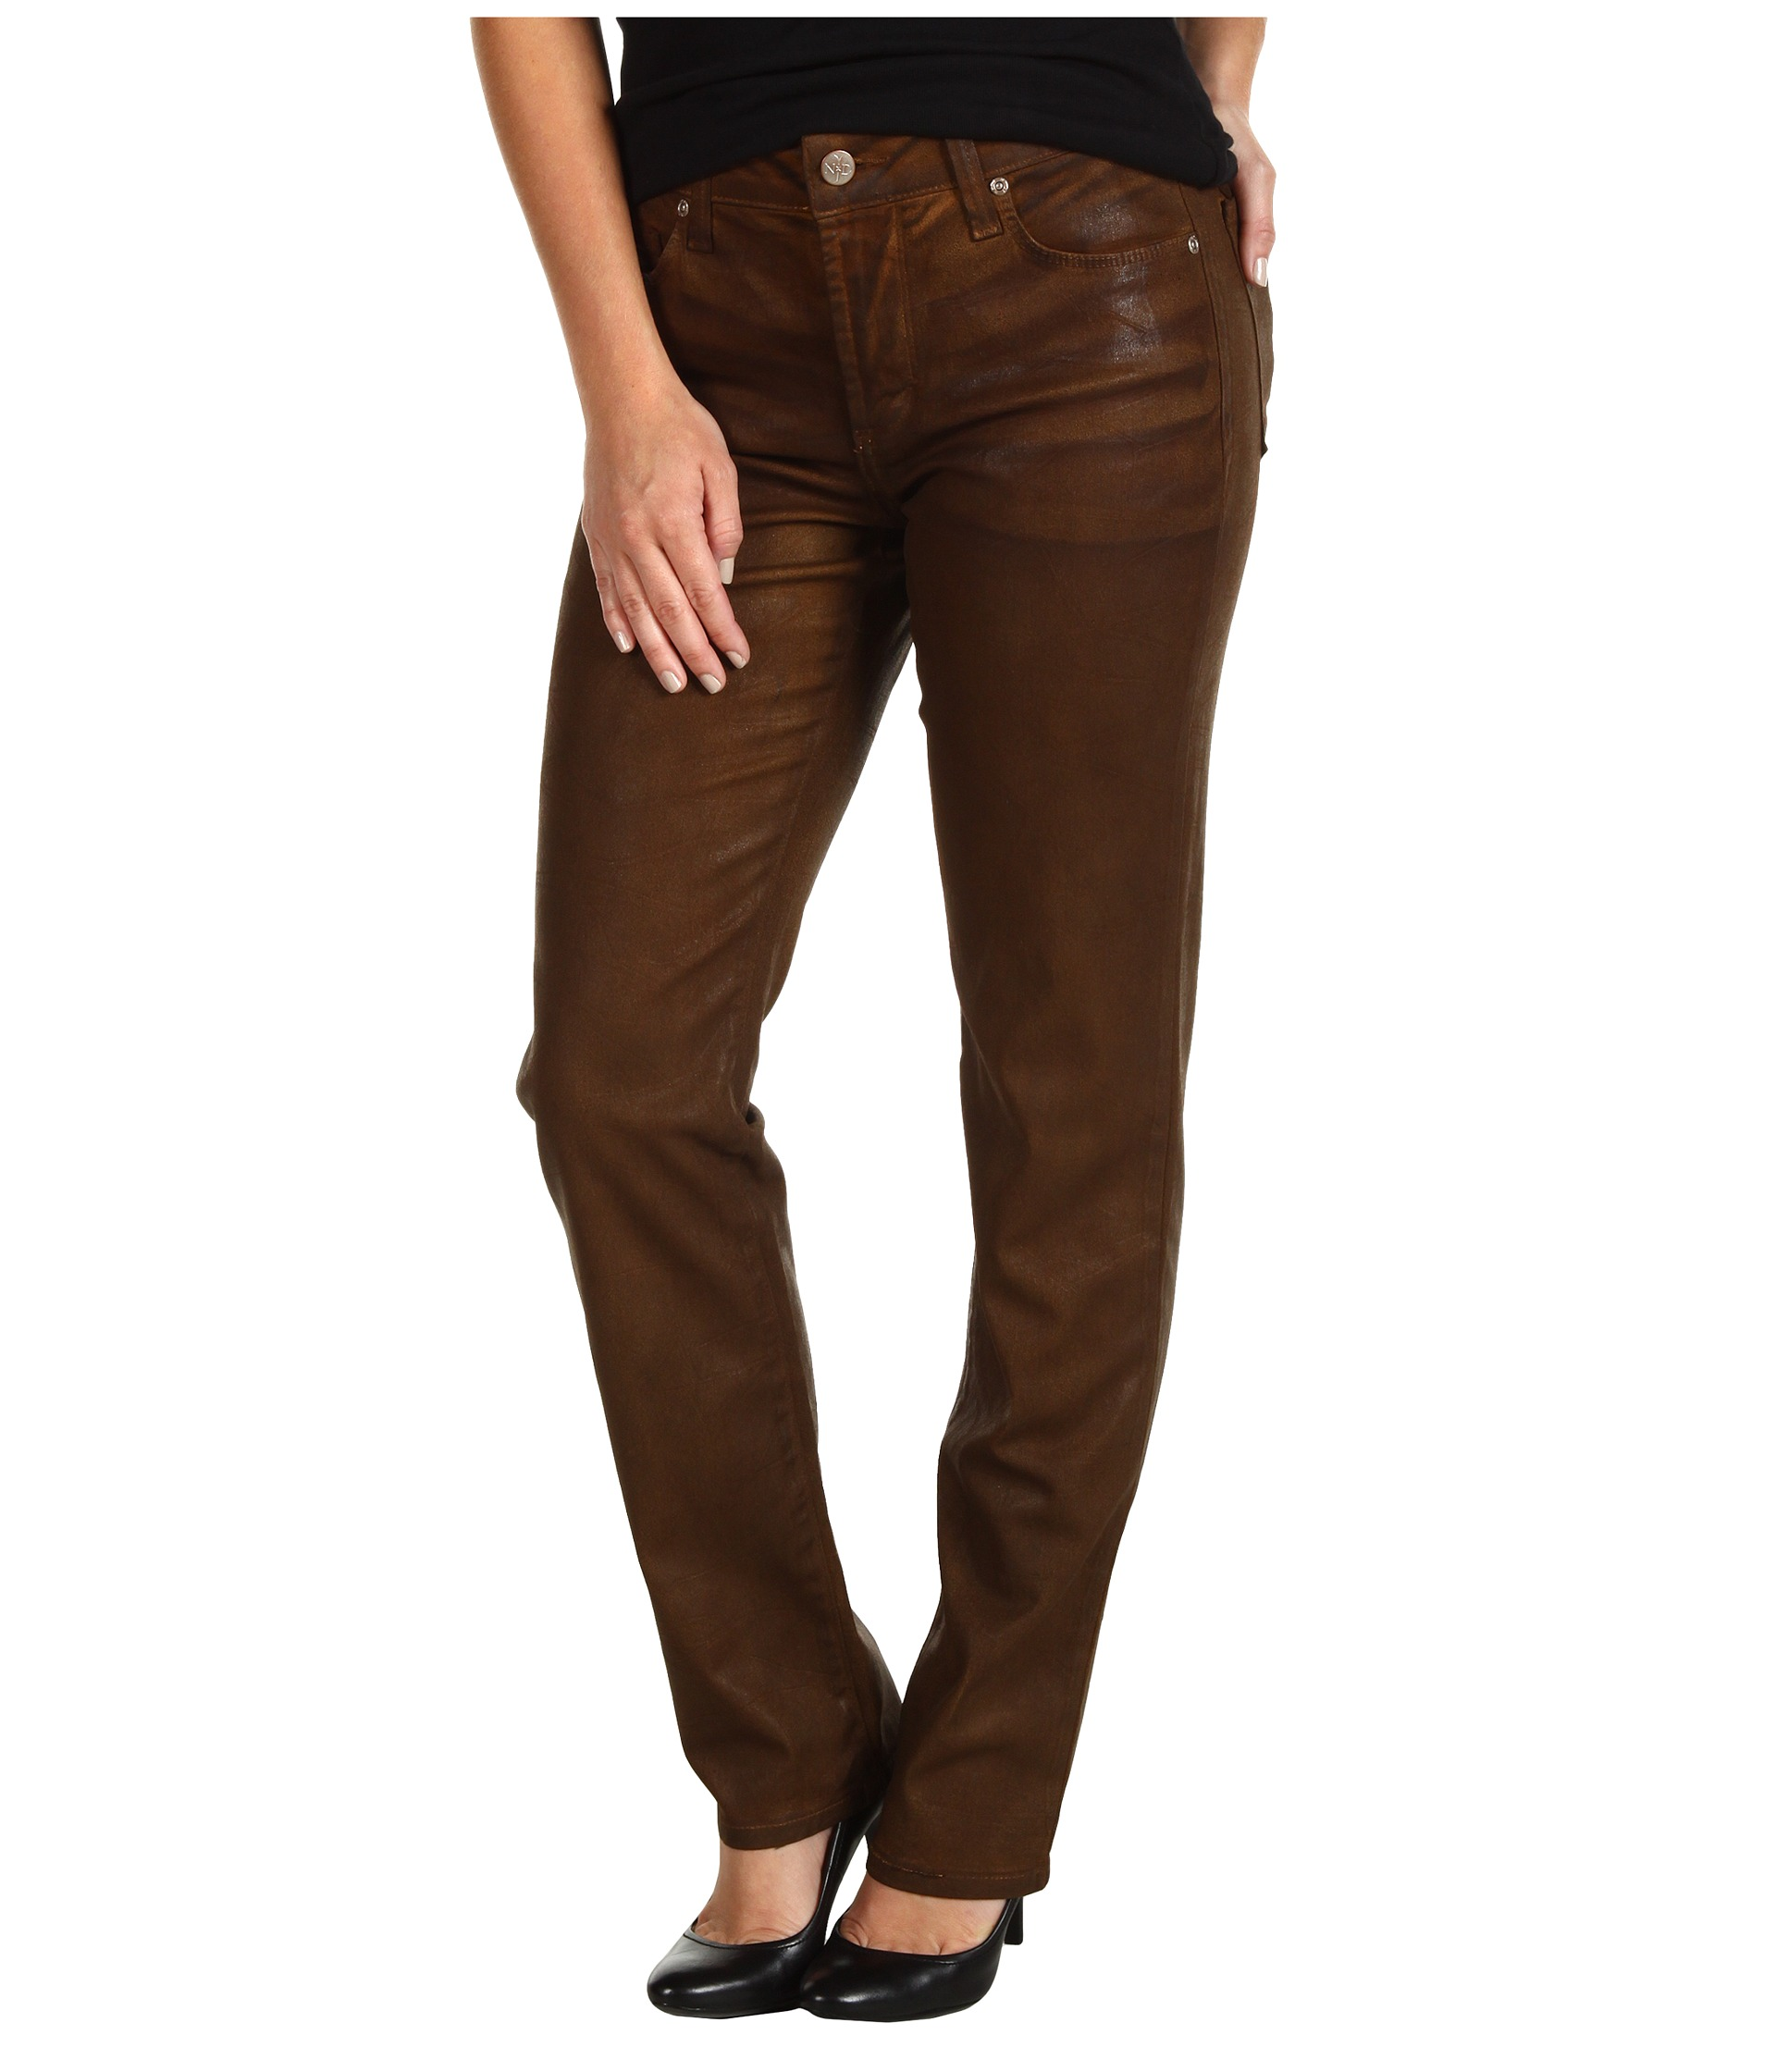 NYDJ Petite Petite Sheri Skinny in Terra Tan Coated Denim Terra